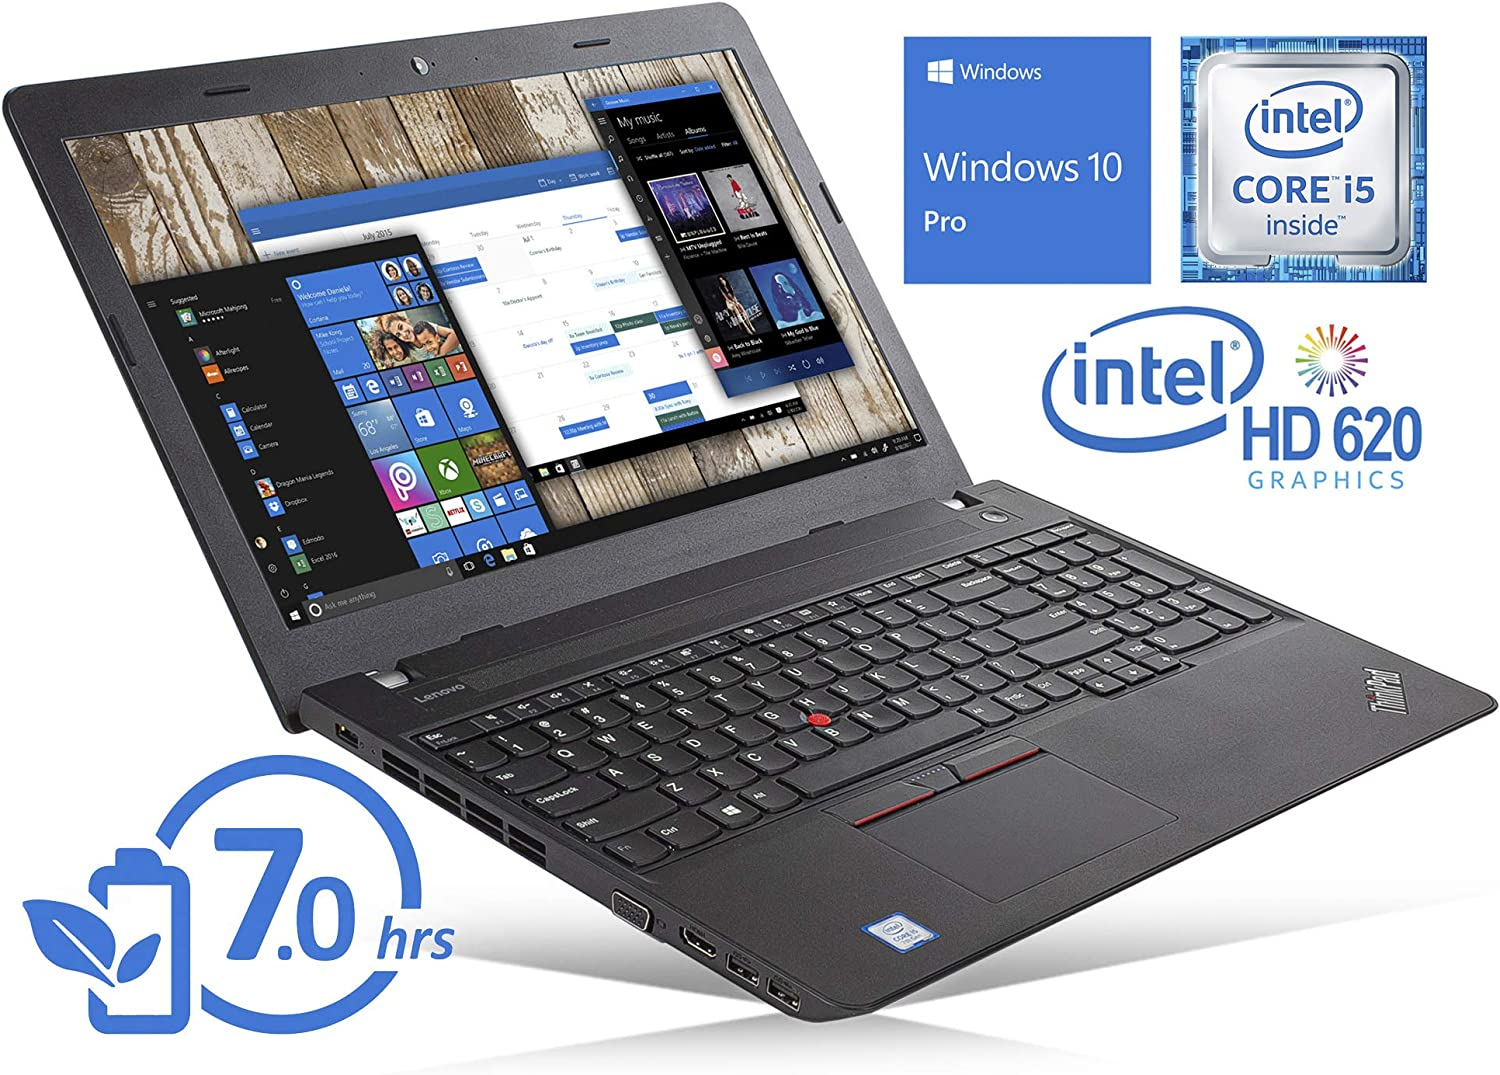 "Lenovo ThinkPad E570 Laptop, 15.6"" HD Display, Intel Core i5-7200U Upto 3.1GHz, 8GB RAM, 512GB SSD, DVDRW, VGA, HDMI, Card Reader, Wi-Fi, Bluetooth, Windows 10 Pro (Renewed)"